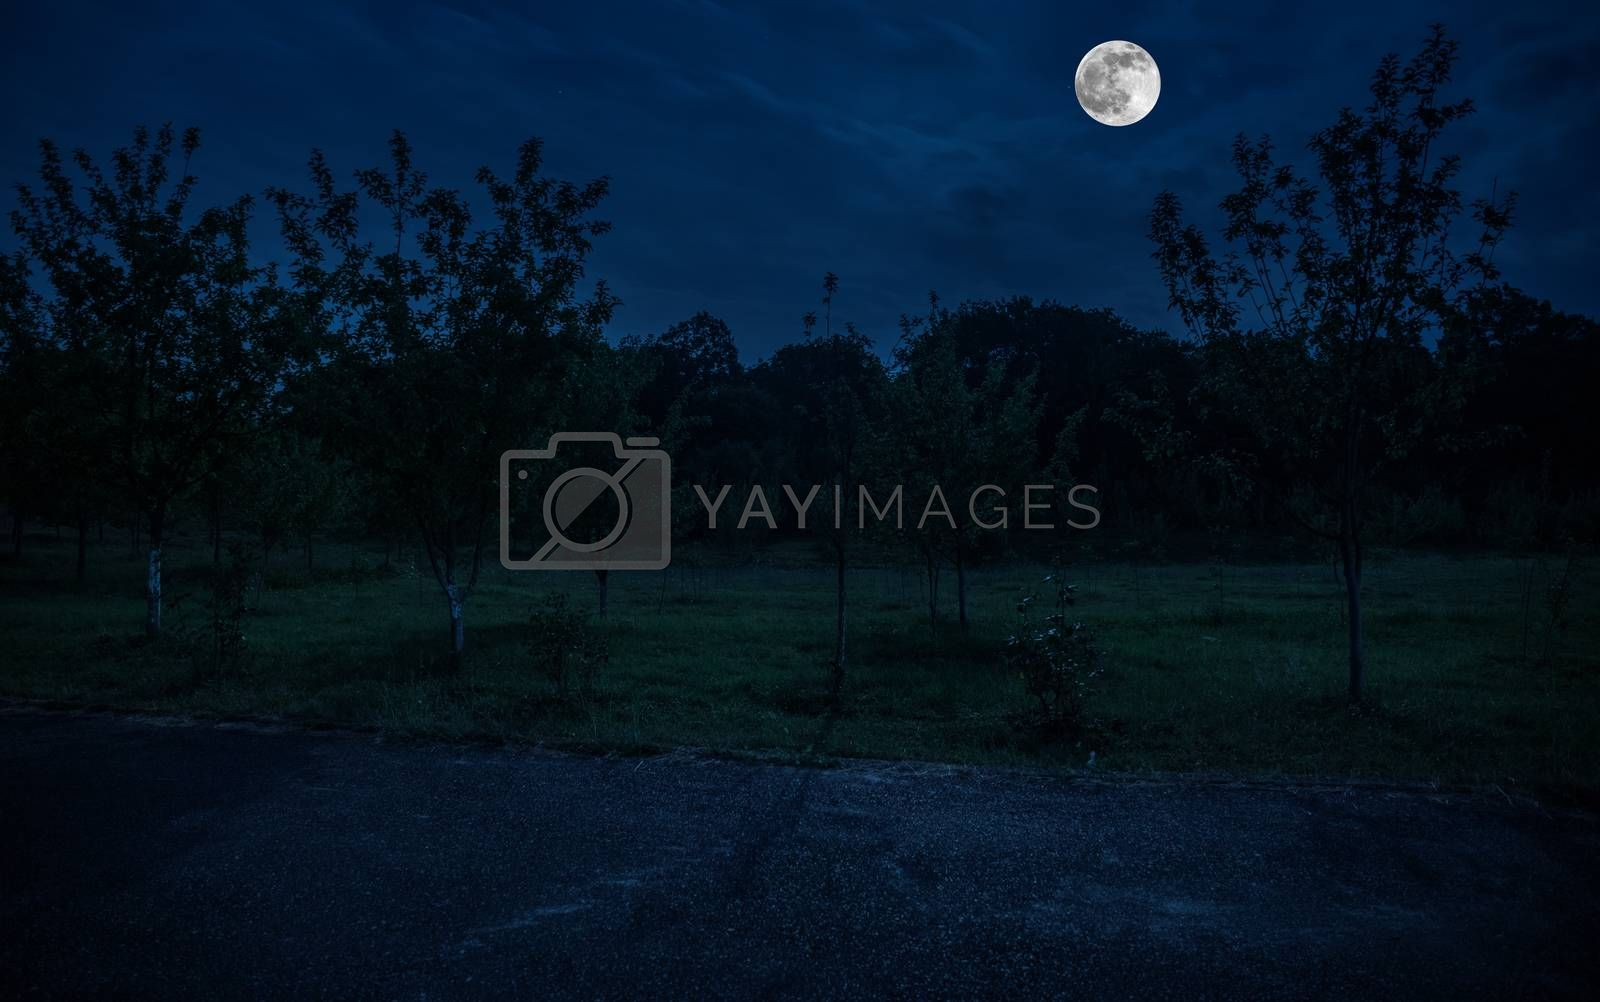 Mountain Road through the forest on a full moon night. Scenic night landscape of dark blue sky with moon